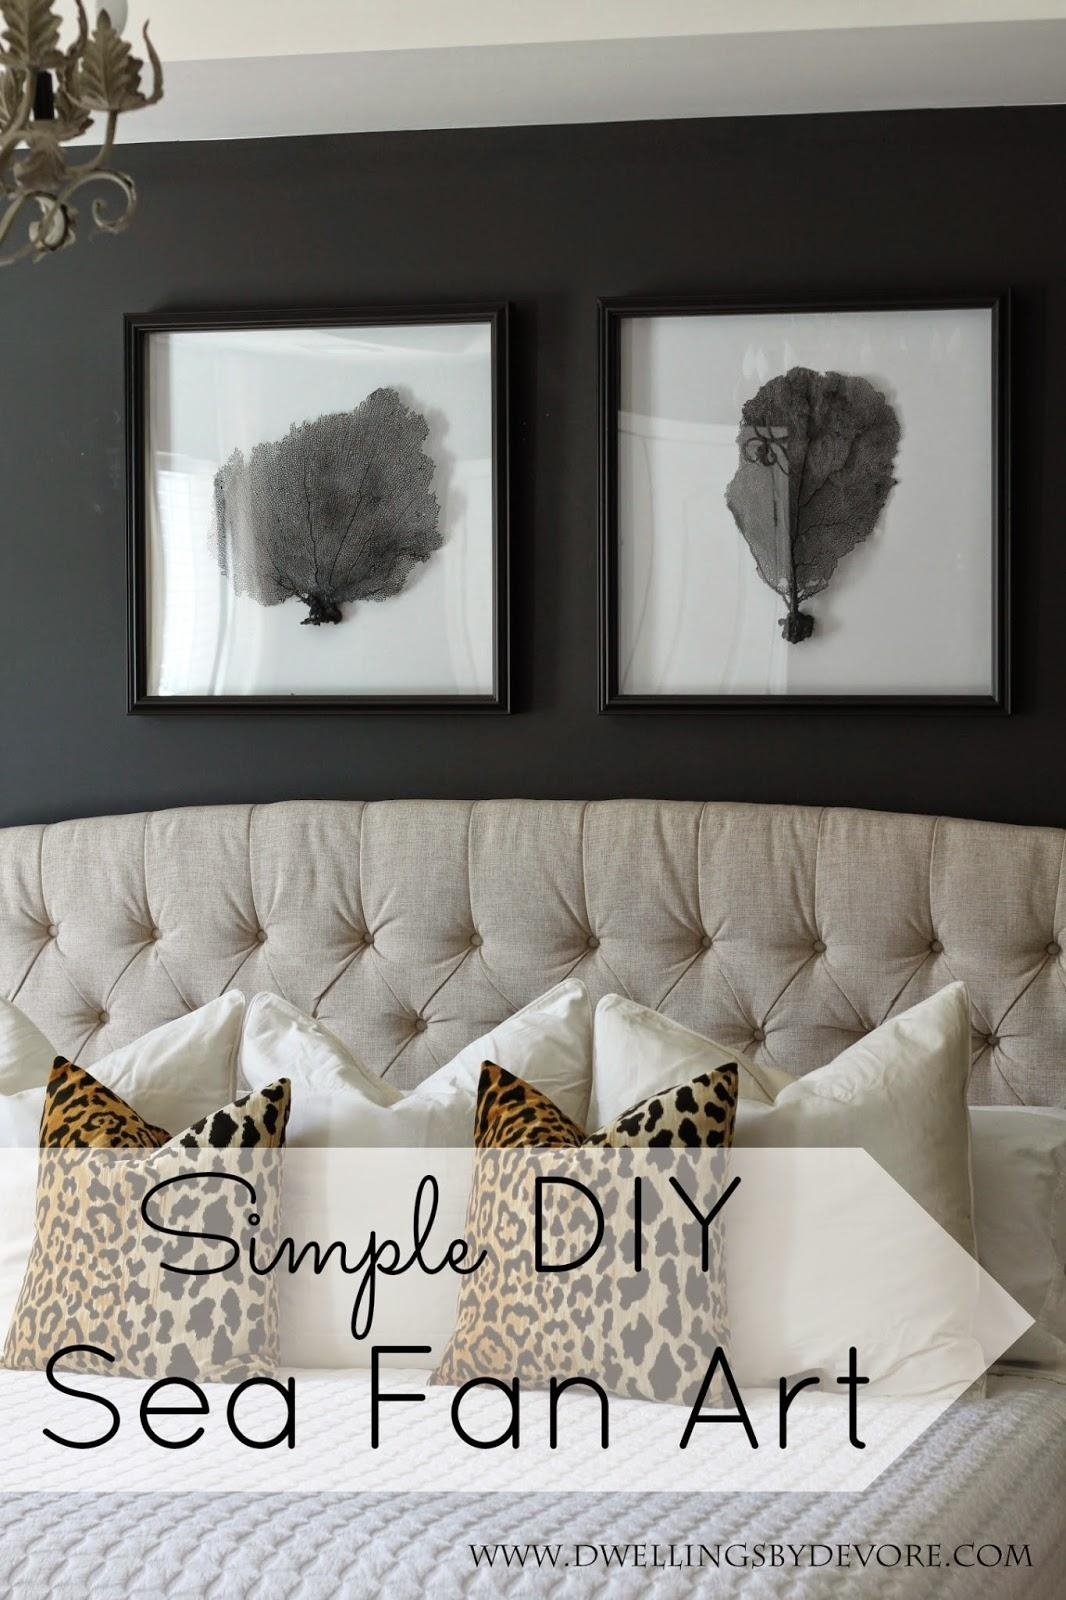 Dwellingsdevore: Diy Sea Fan Art With Regard To Sea Fan Wall Art (Image 9 of 20)